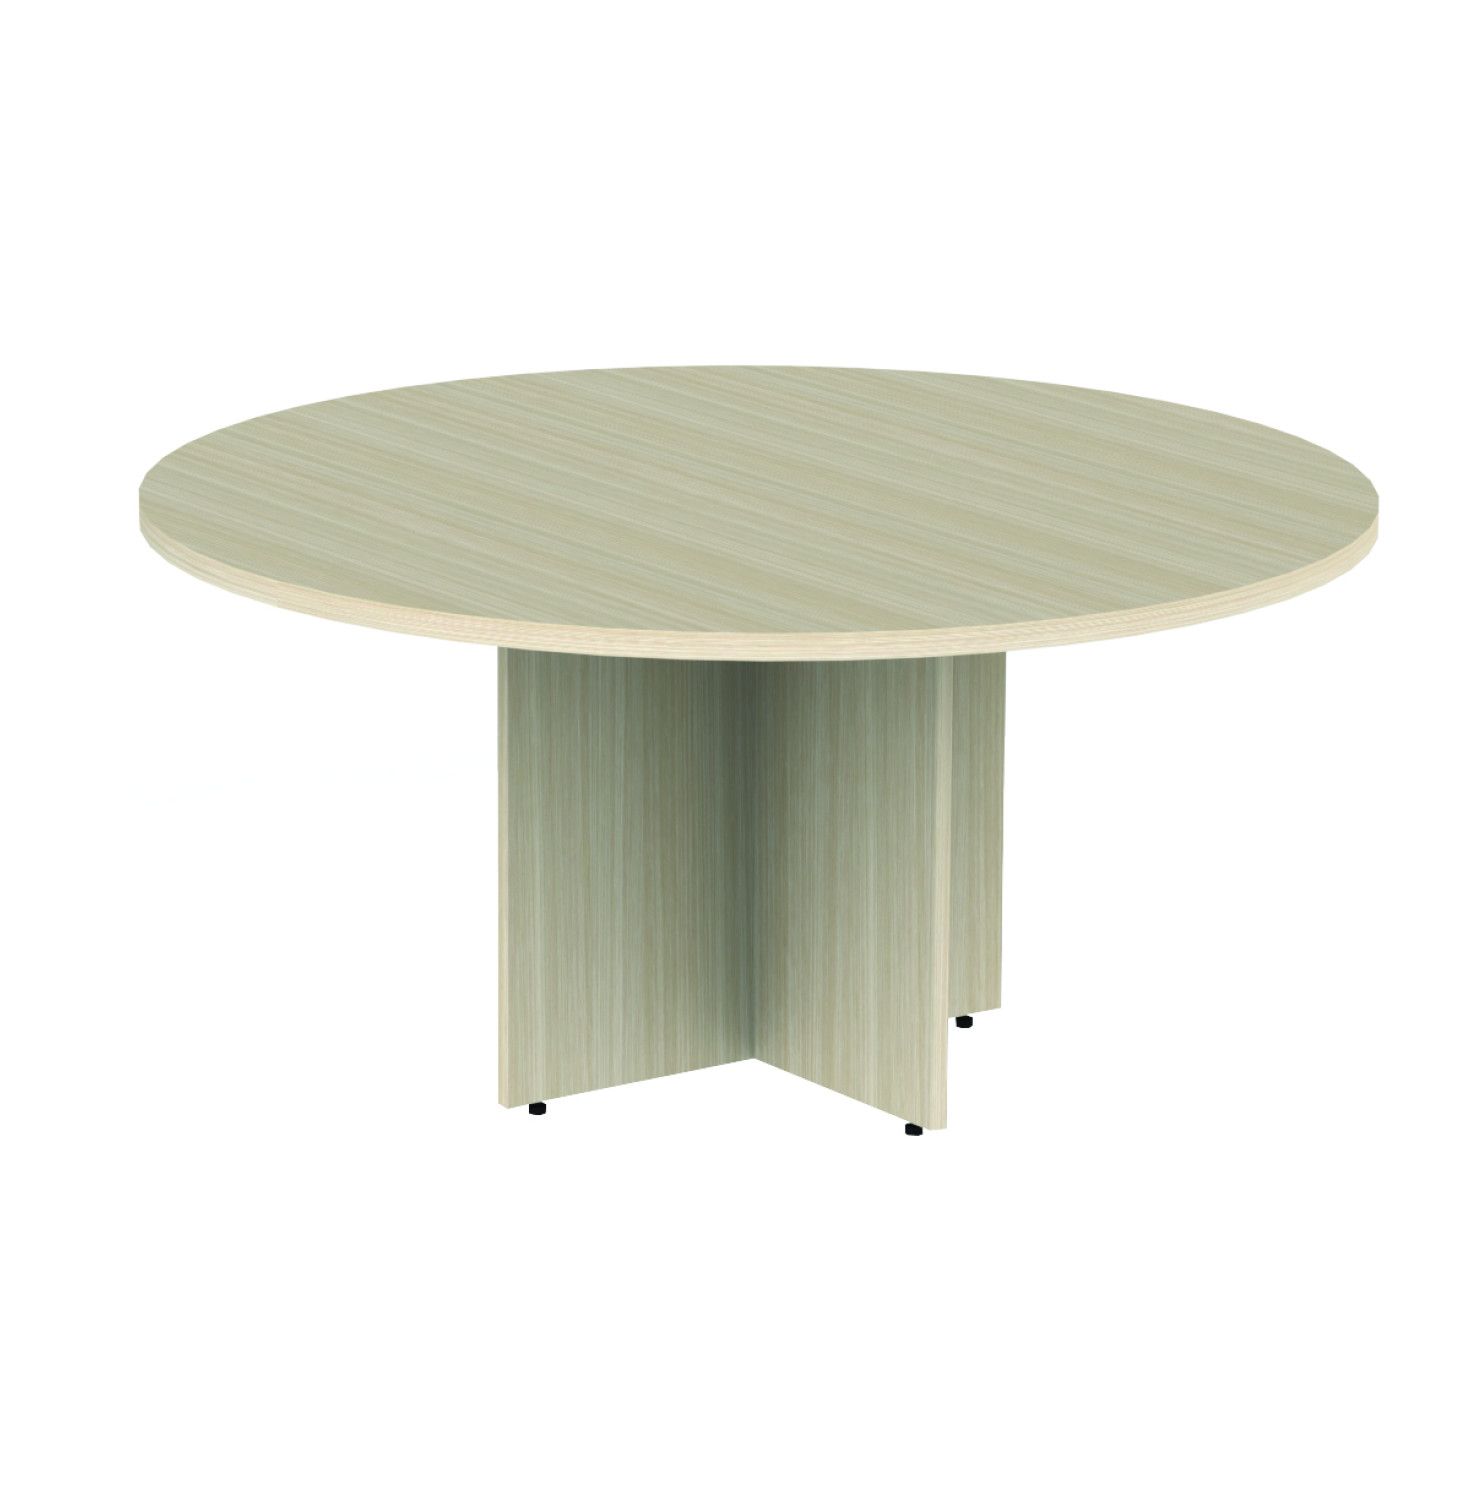 Round Conference Table Chairs Junk Mail - Round conference table for 4